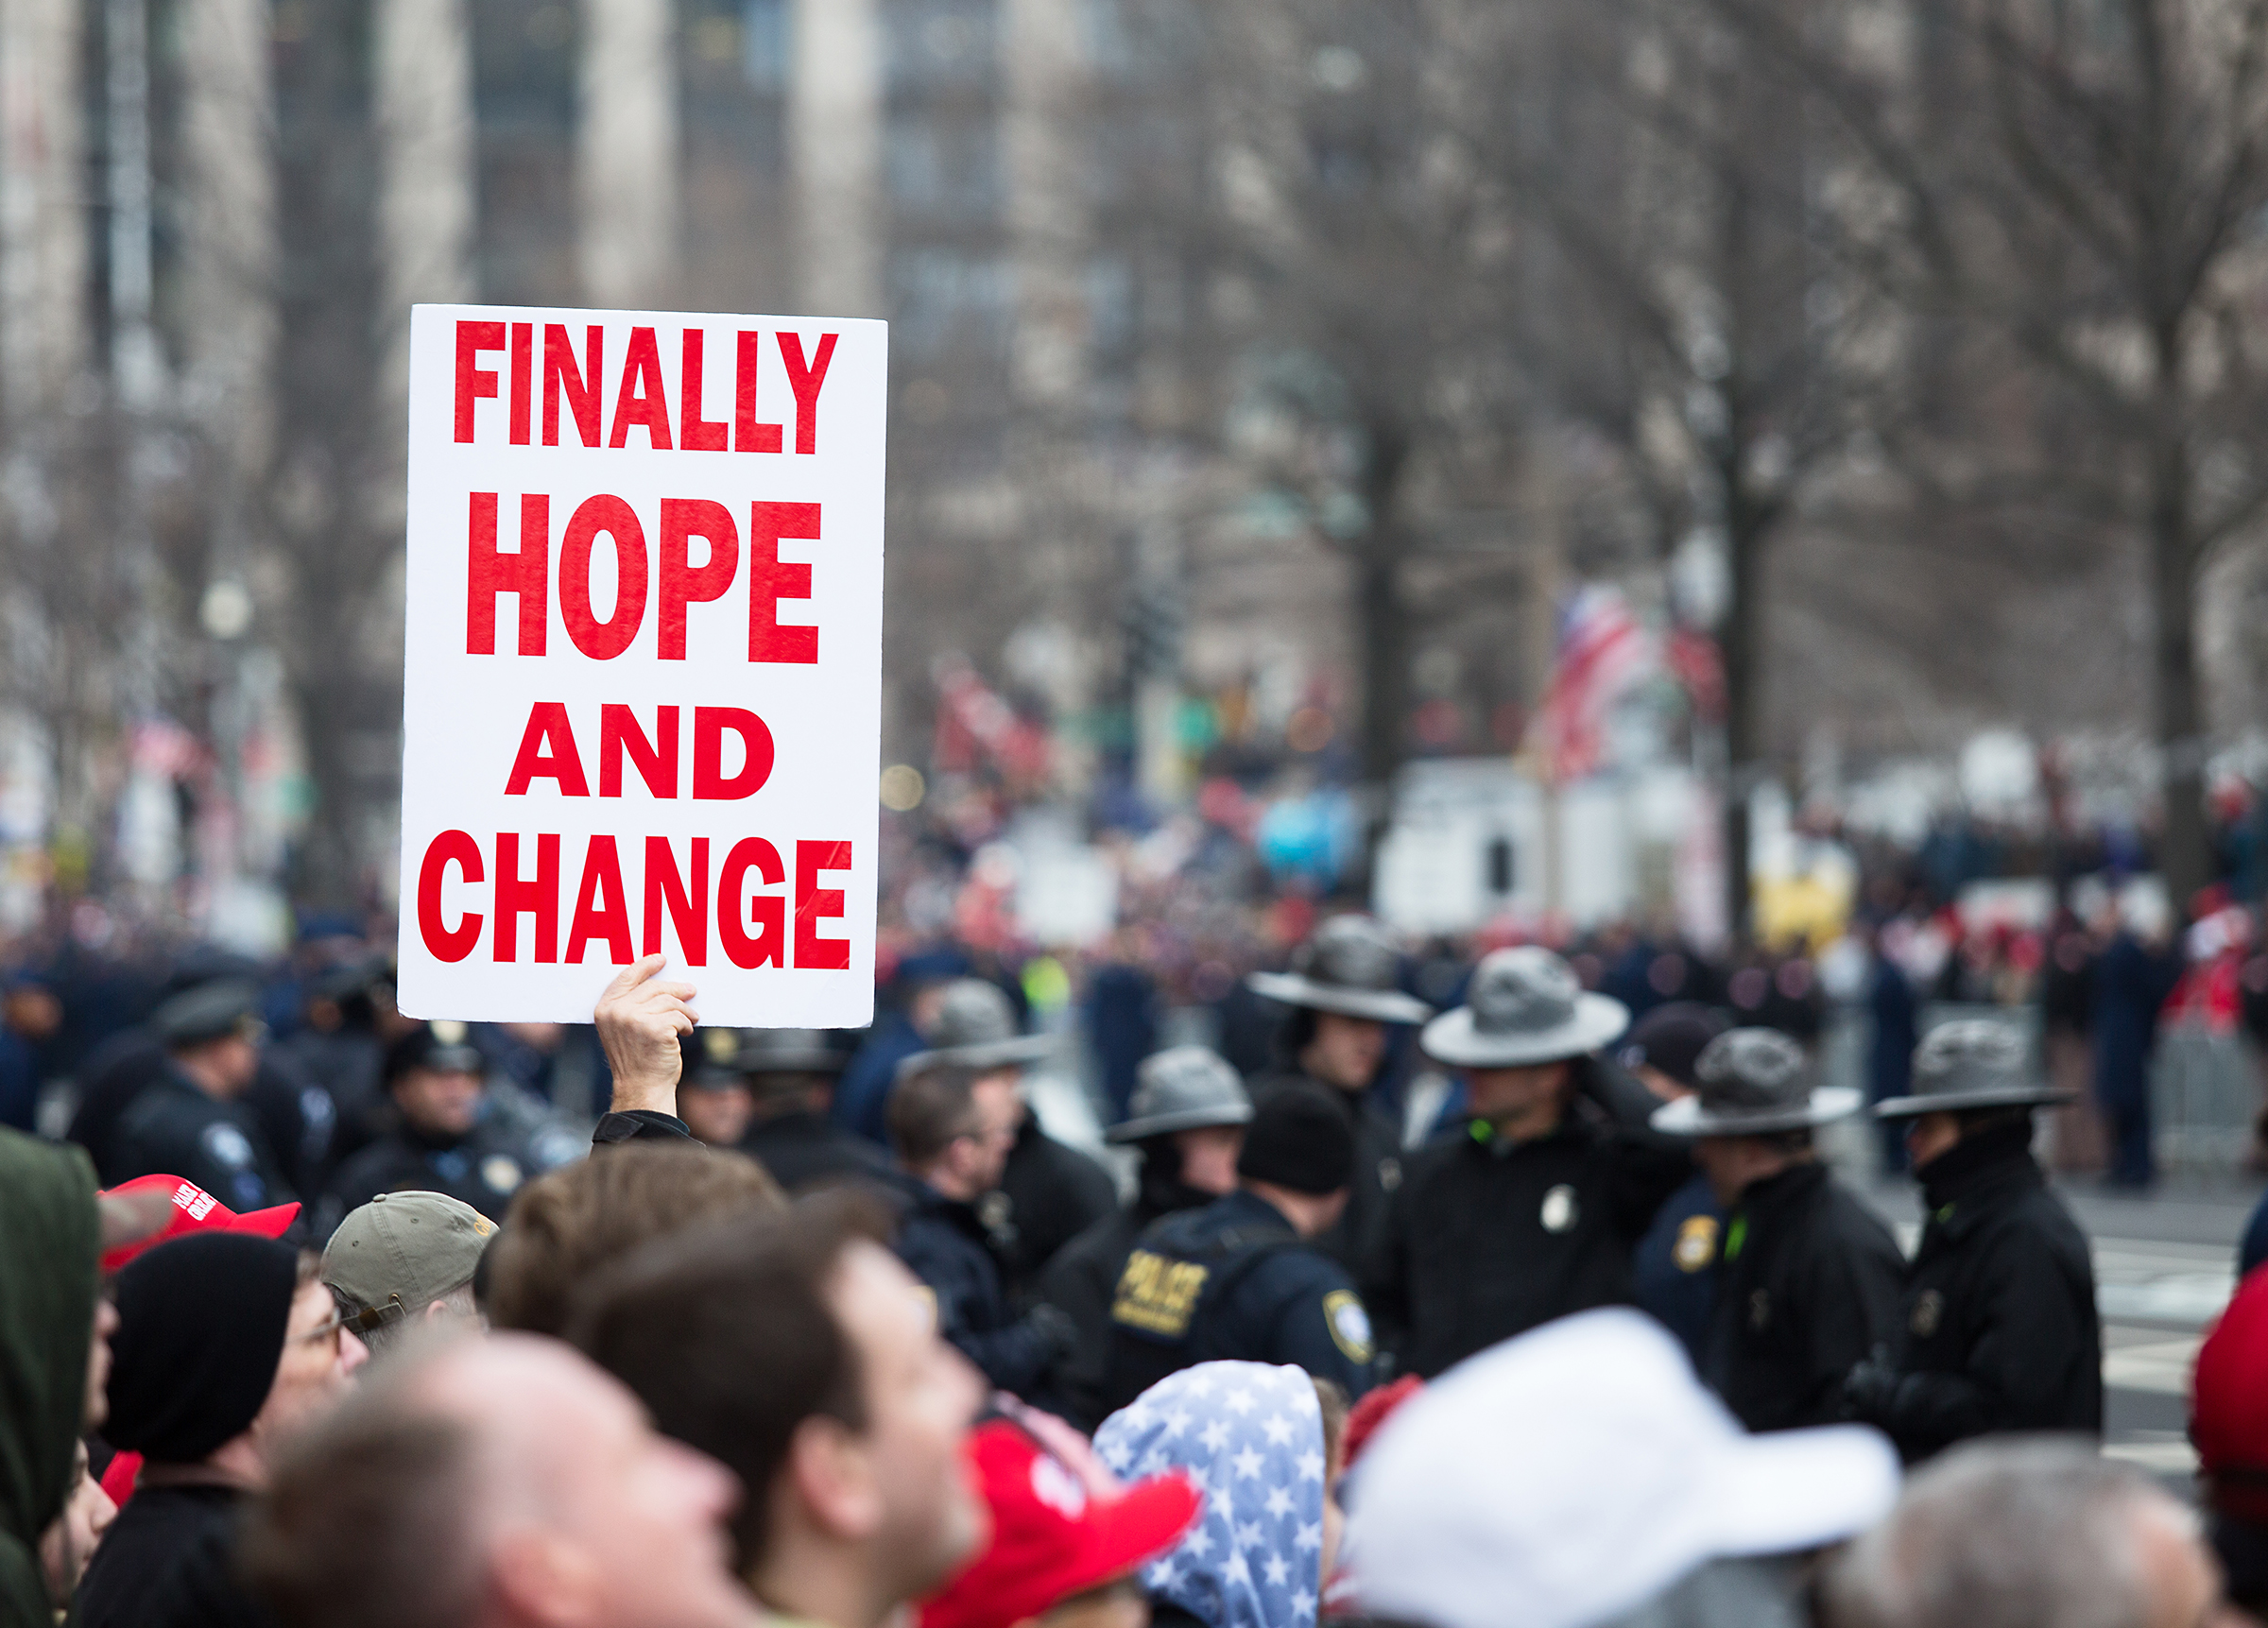 A sign along Pennsylvania Avenue during the 2017 Presidential Inauguration in Washington D.C.